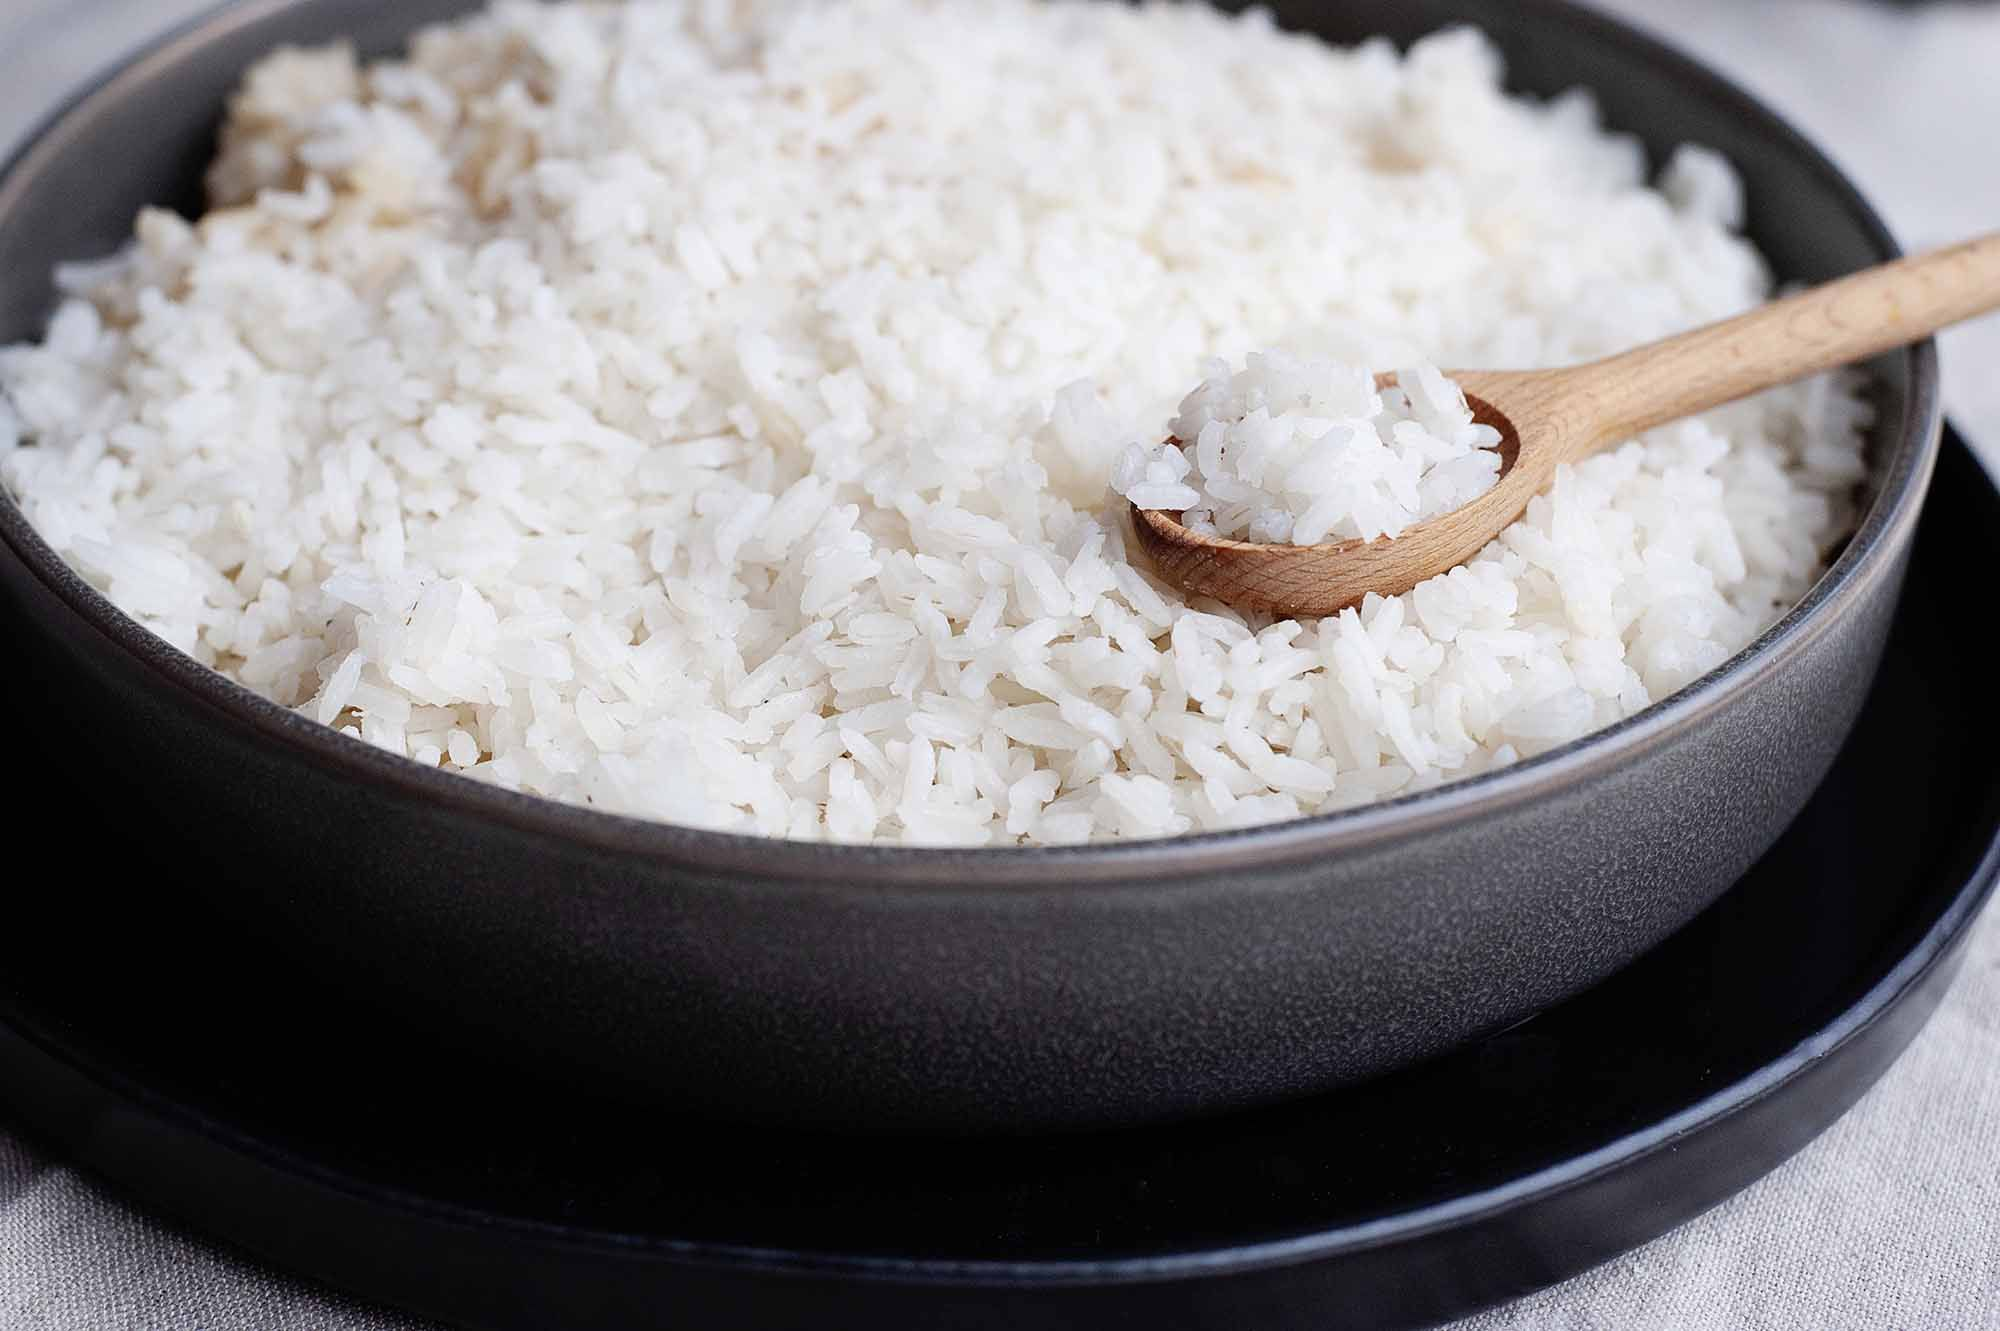 Perfect white rice in a metal pan with a wooden spoon full of cooked white rice.